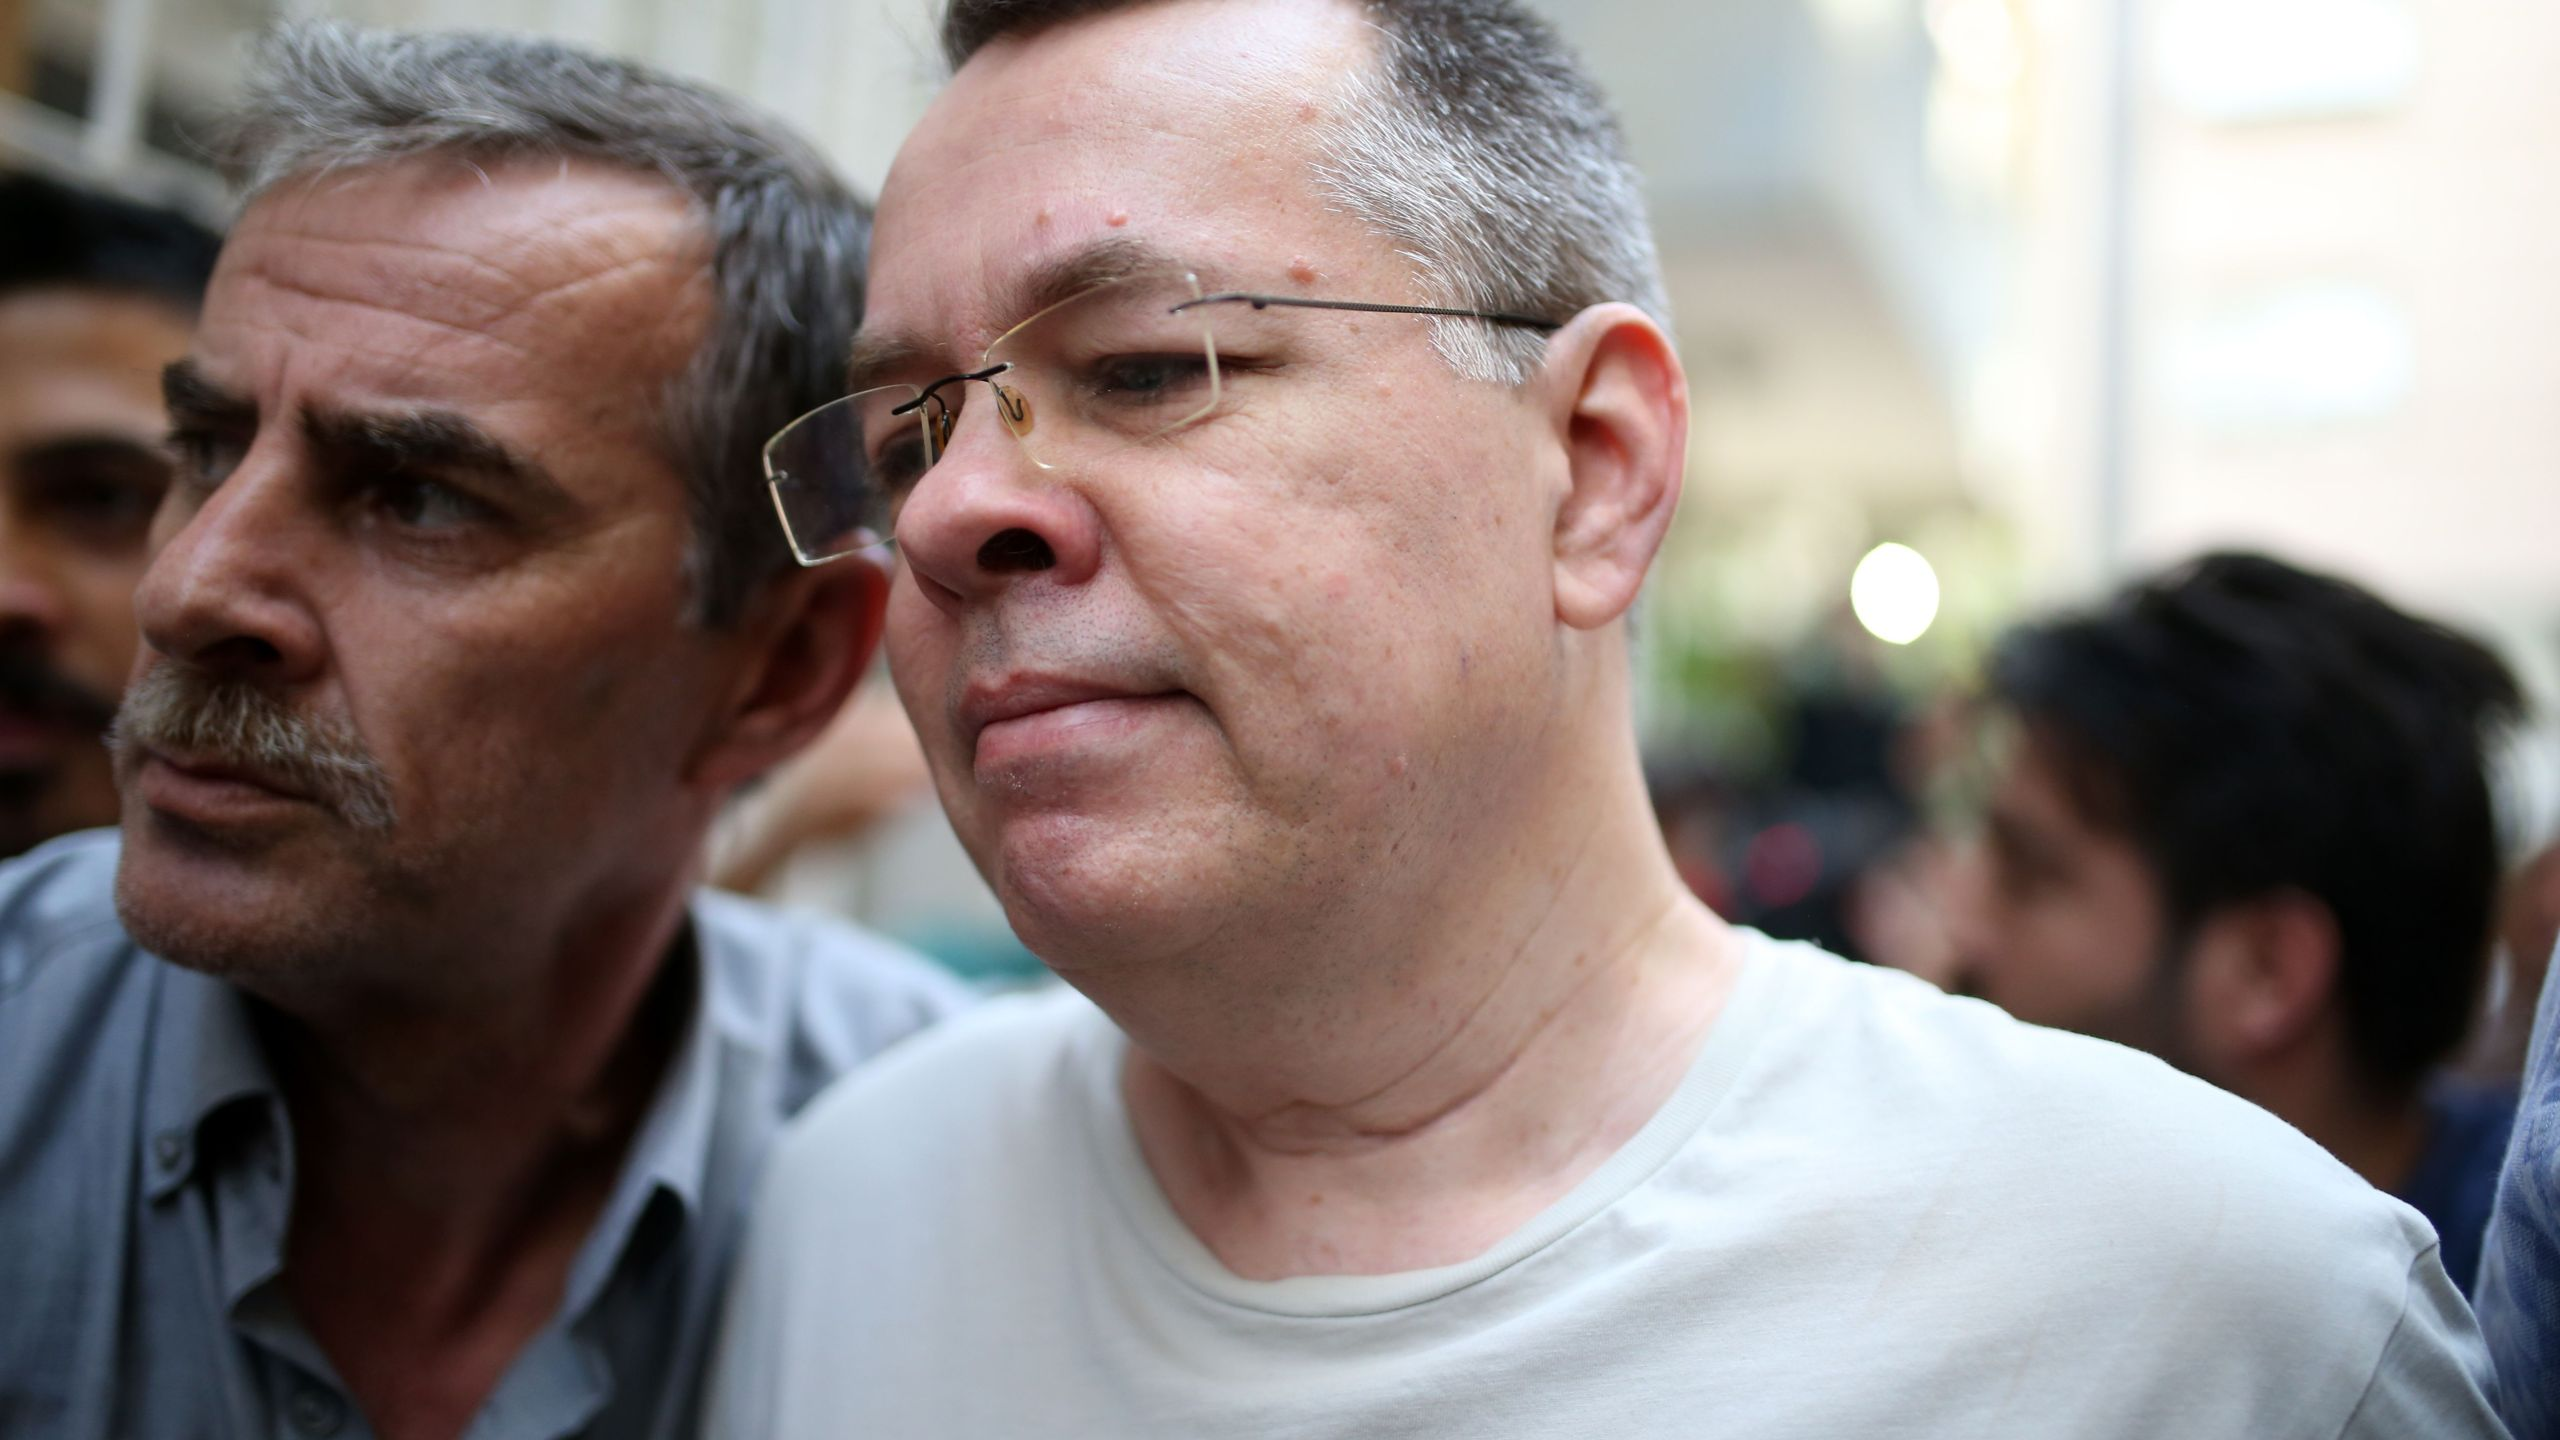 Pastor Andrew Craig Brunson (R), escorted by Turkish plain clothes police officers as he arrives at his house on July 25, 2018 in Izmir. (Credit: STRINGER/AFP/Getty Images)